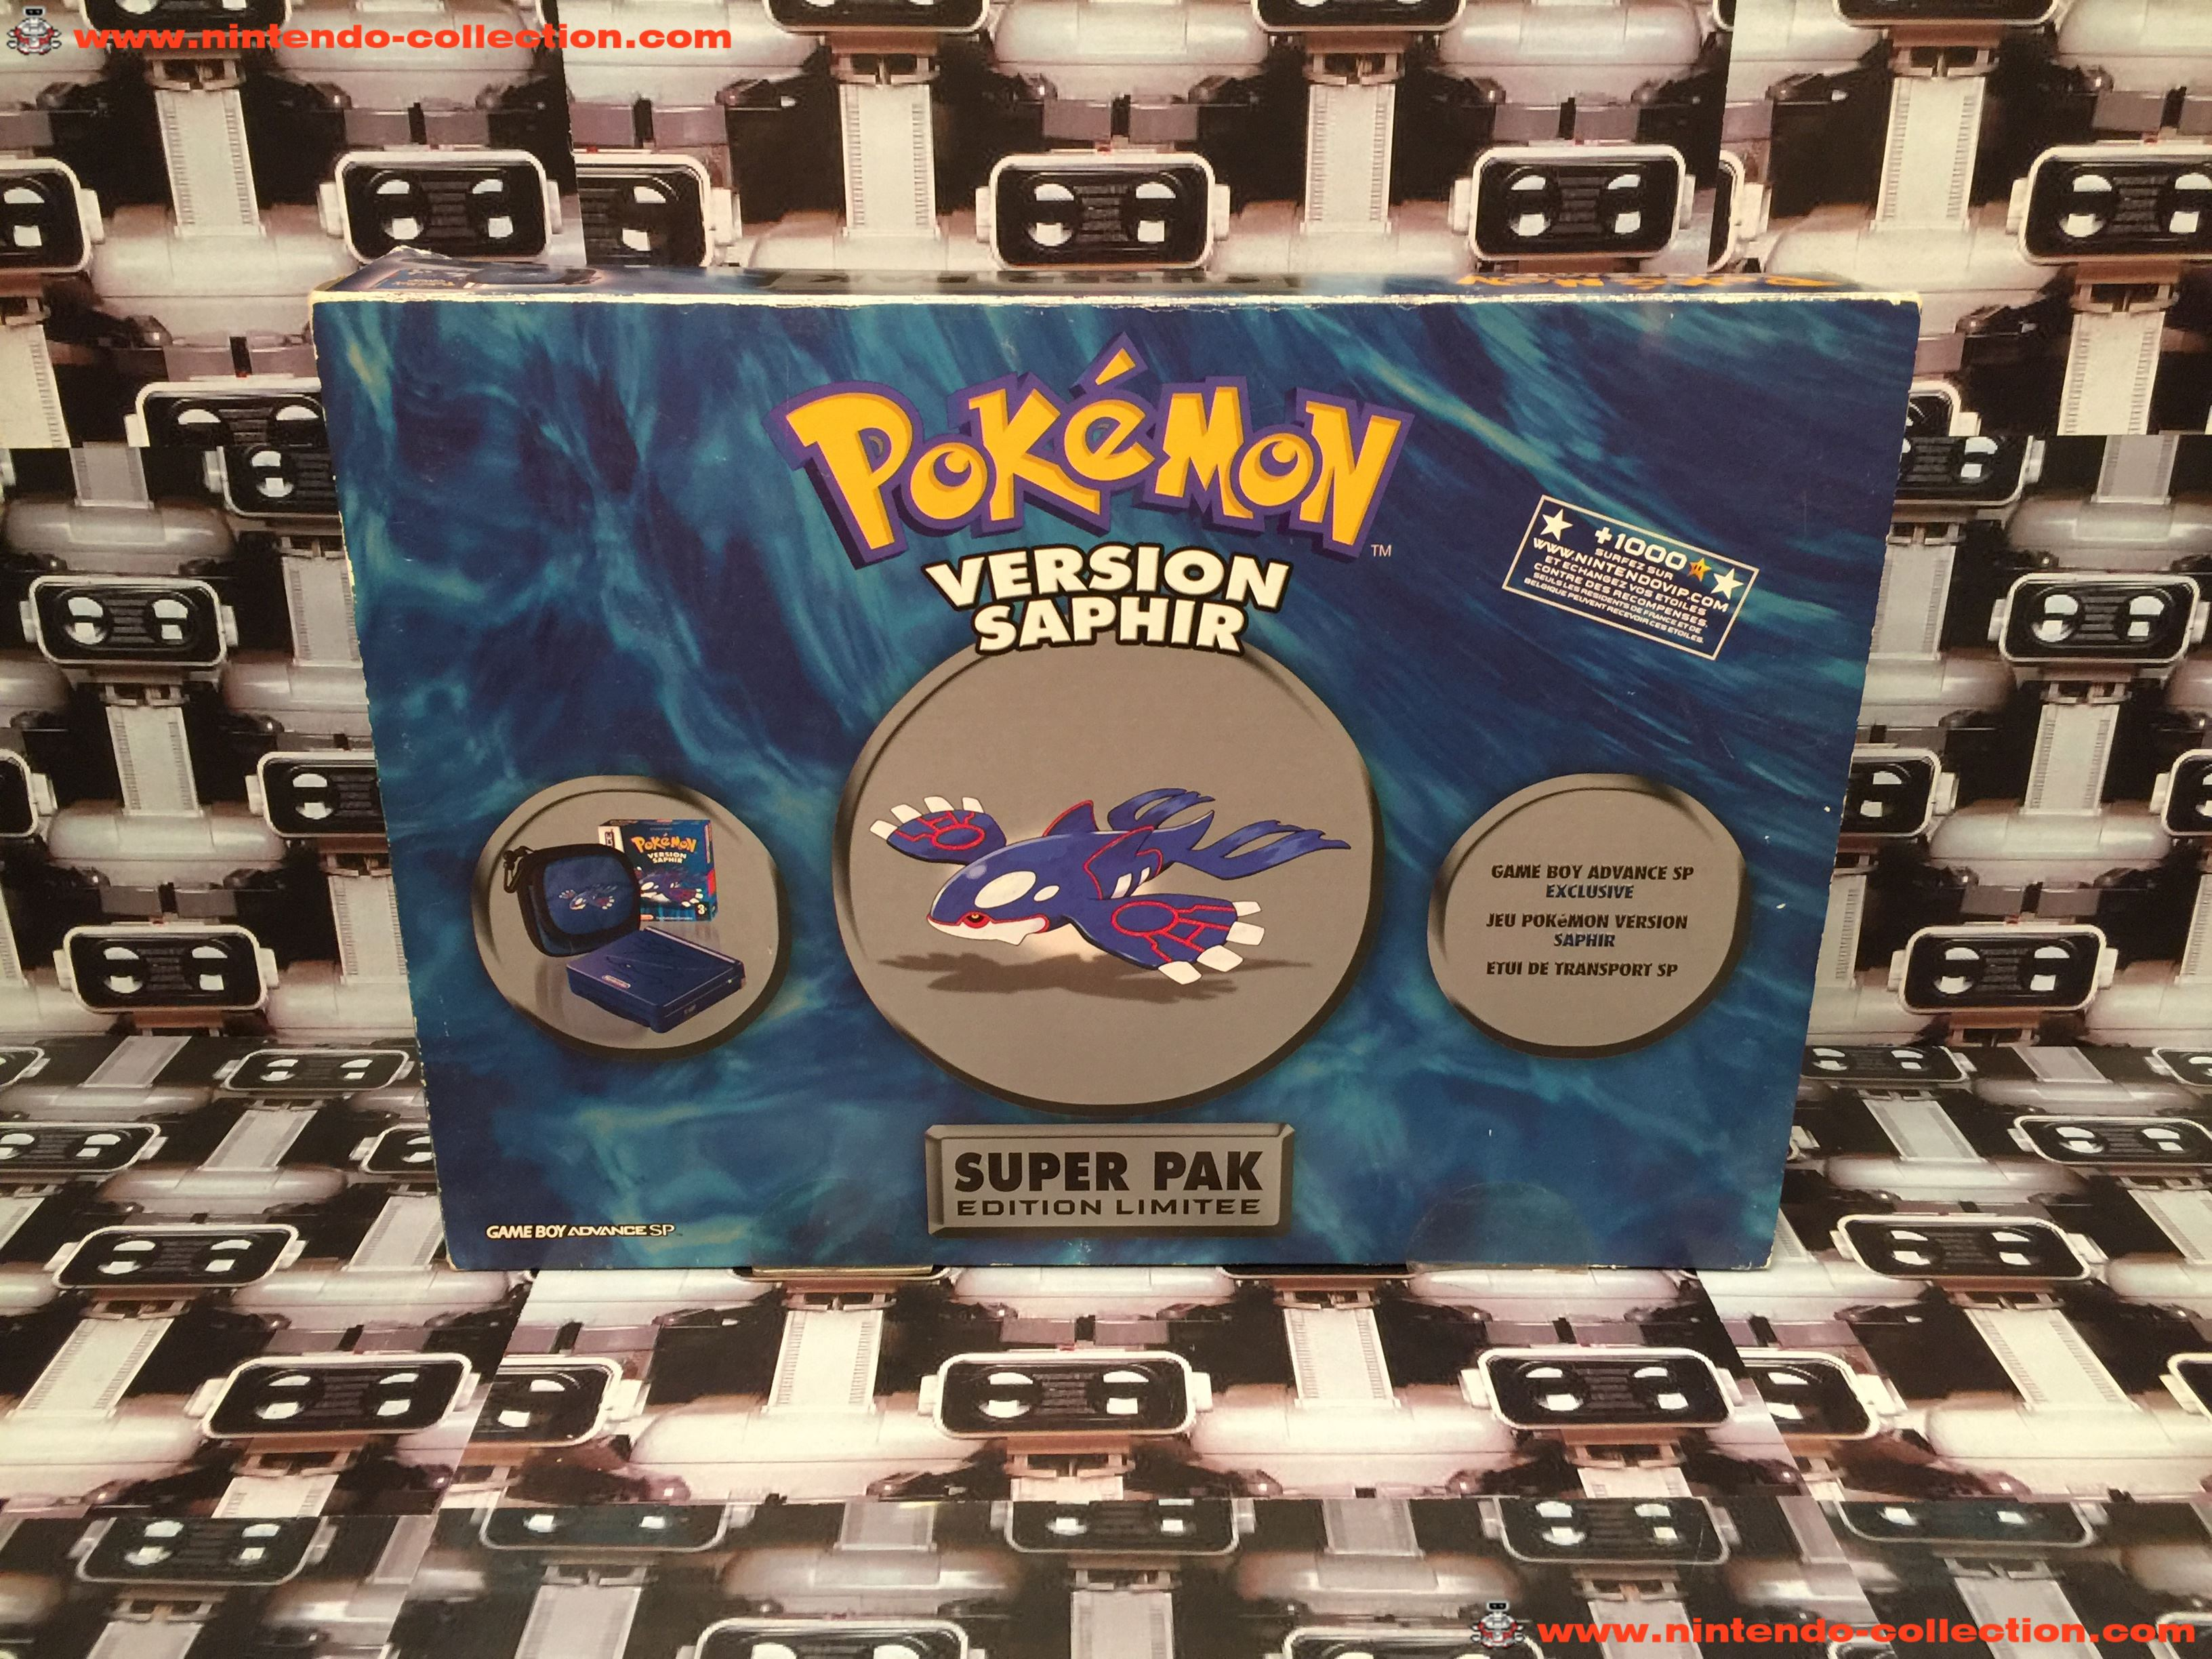 www.nintendo-collection.com - Gameboy Advance SP Super Pack Collector Pokemon Version Saphir - 01